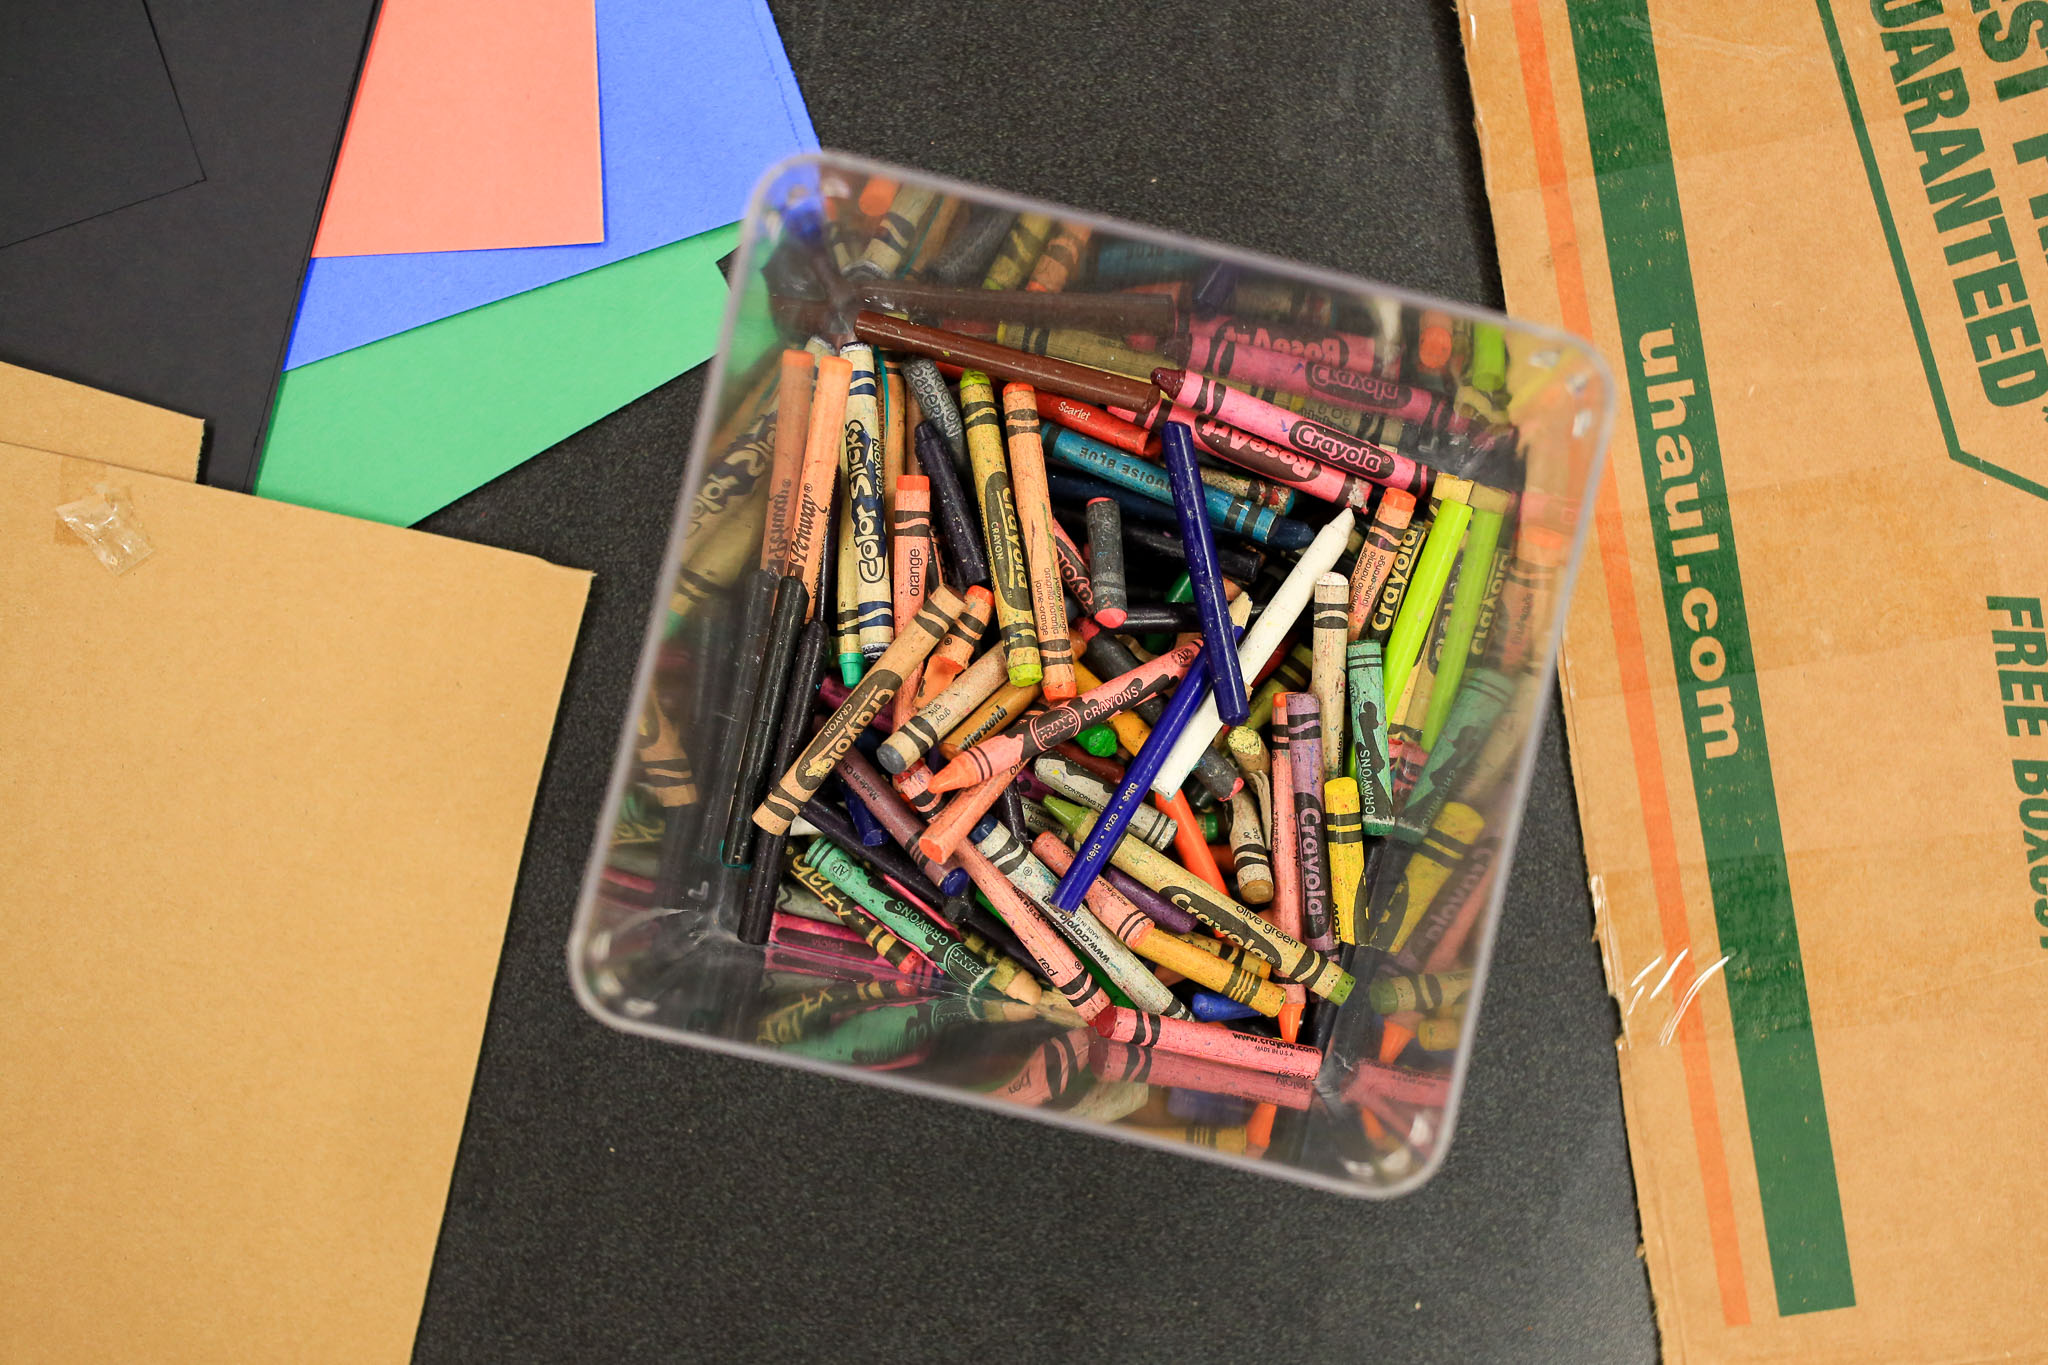 Craft paper, cardboard, and an assortment of Crayola crayons were laid out on tables for families to enjoy and create.